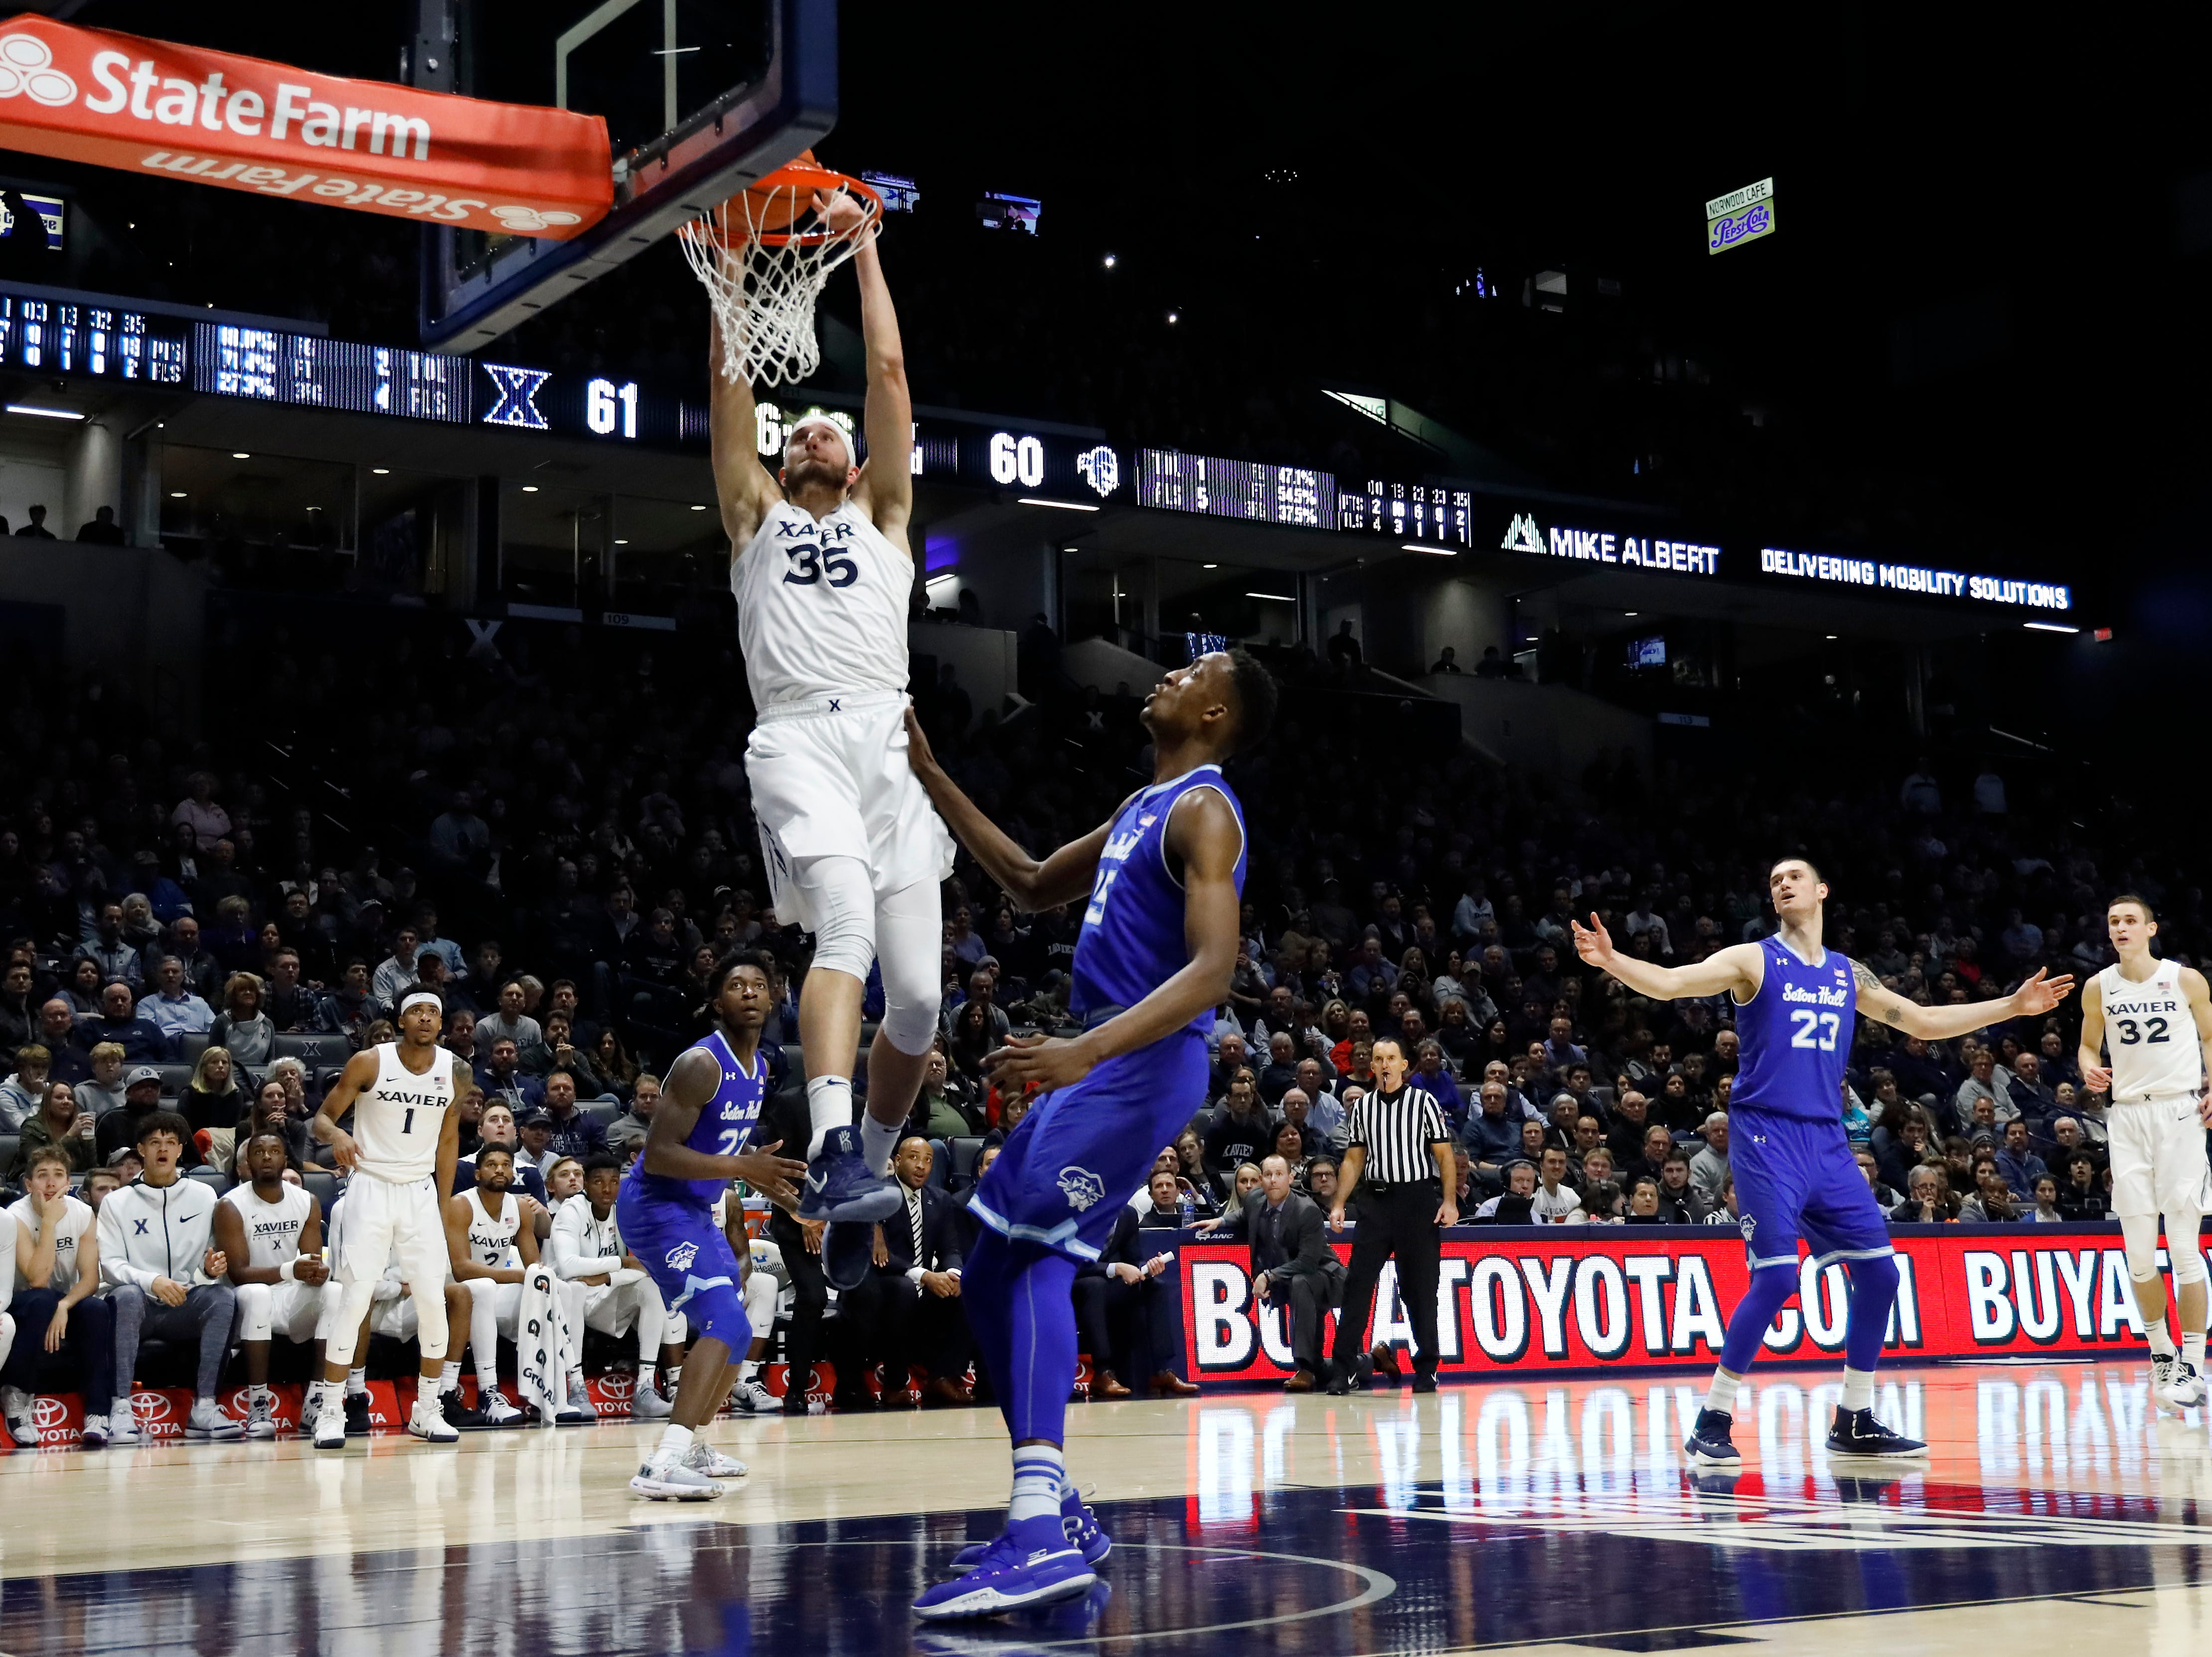 Xavier Musketeers forward Zach Hankins (35) dunks in the second half of an NCAA college basketball game against the Seton Hall Pirates, Wednesday, Jan. 2, 2019, at the Cintas Center in Cincinnati. Seton Hall won 80-70.